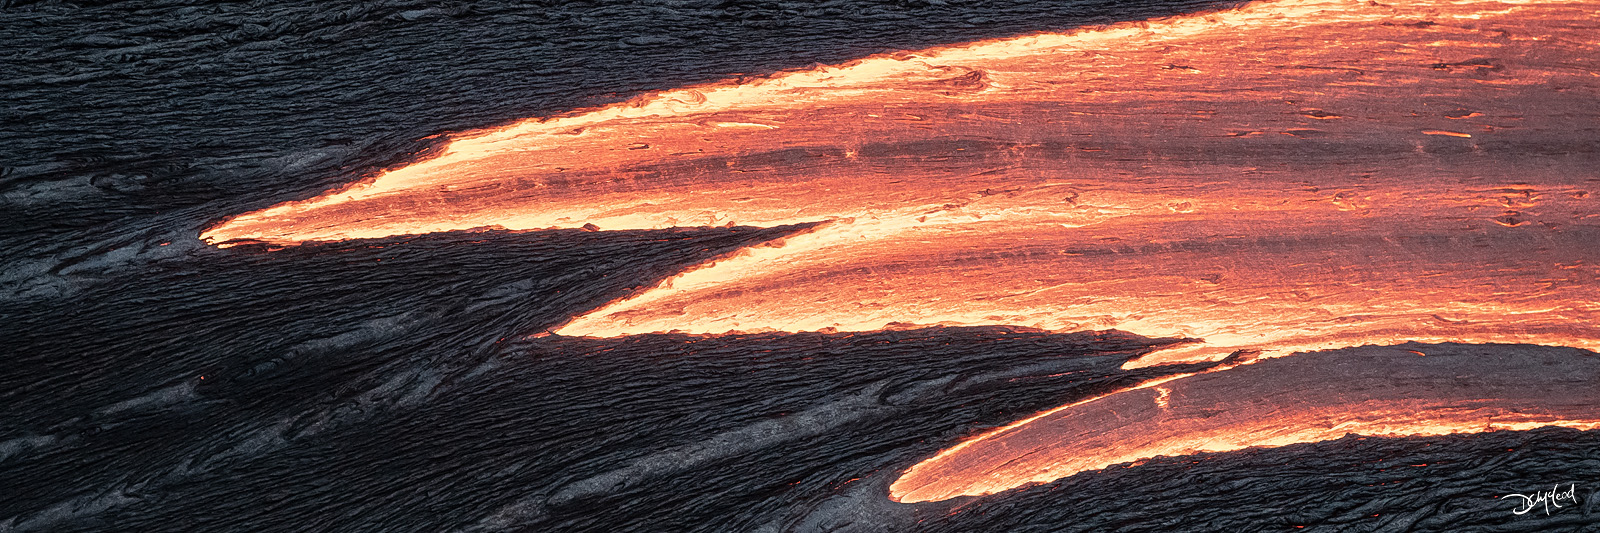 Panorama view of flowing orange lava surrounded by black rock in Hawaii.